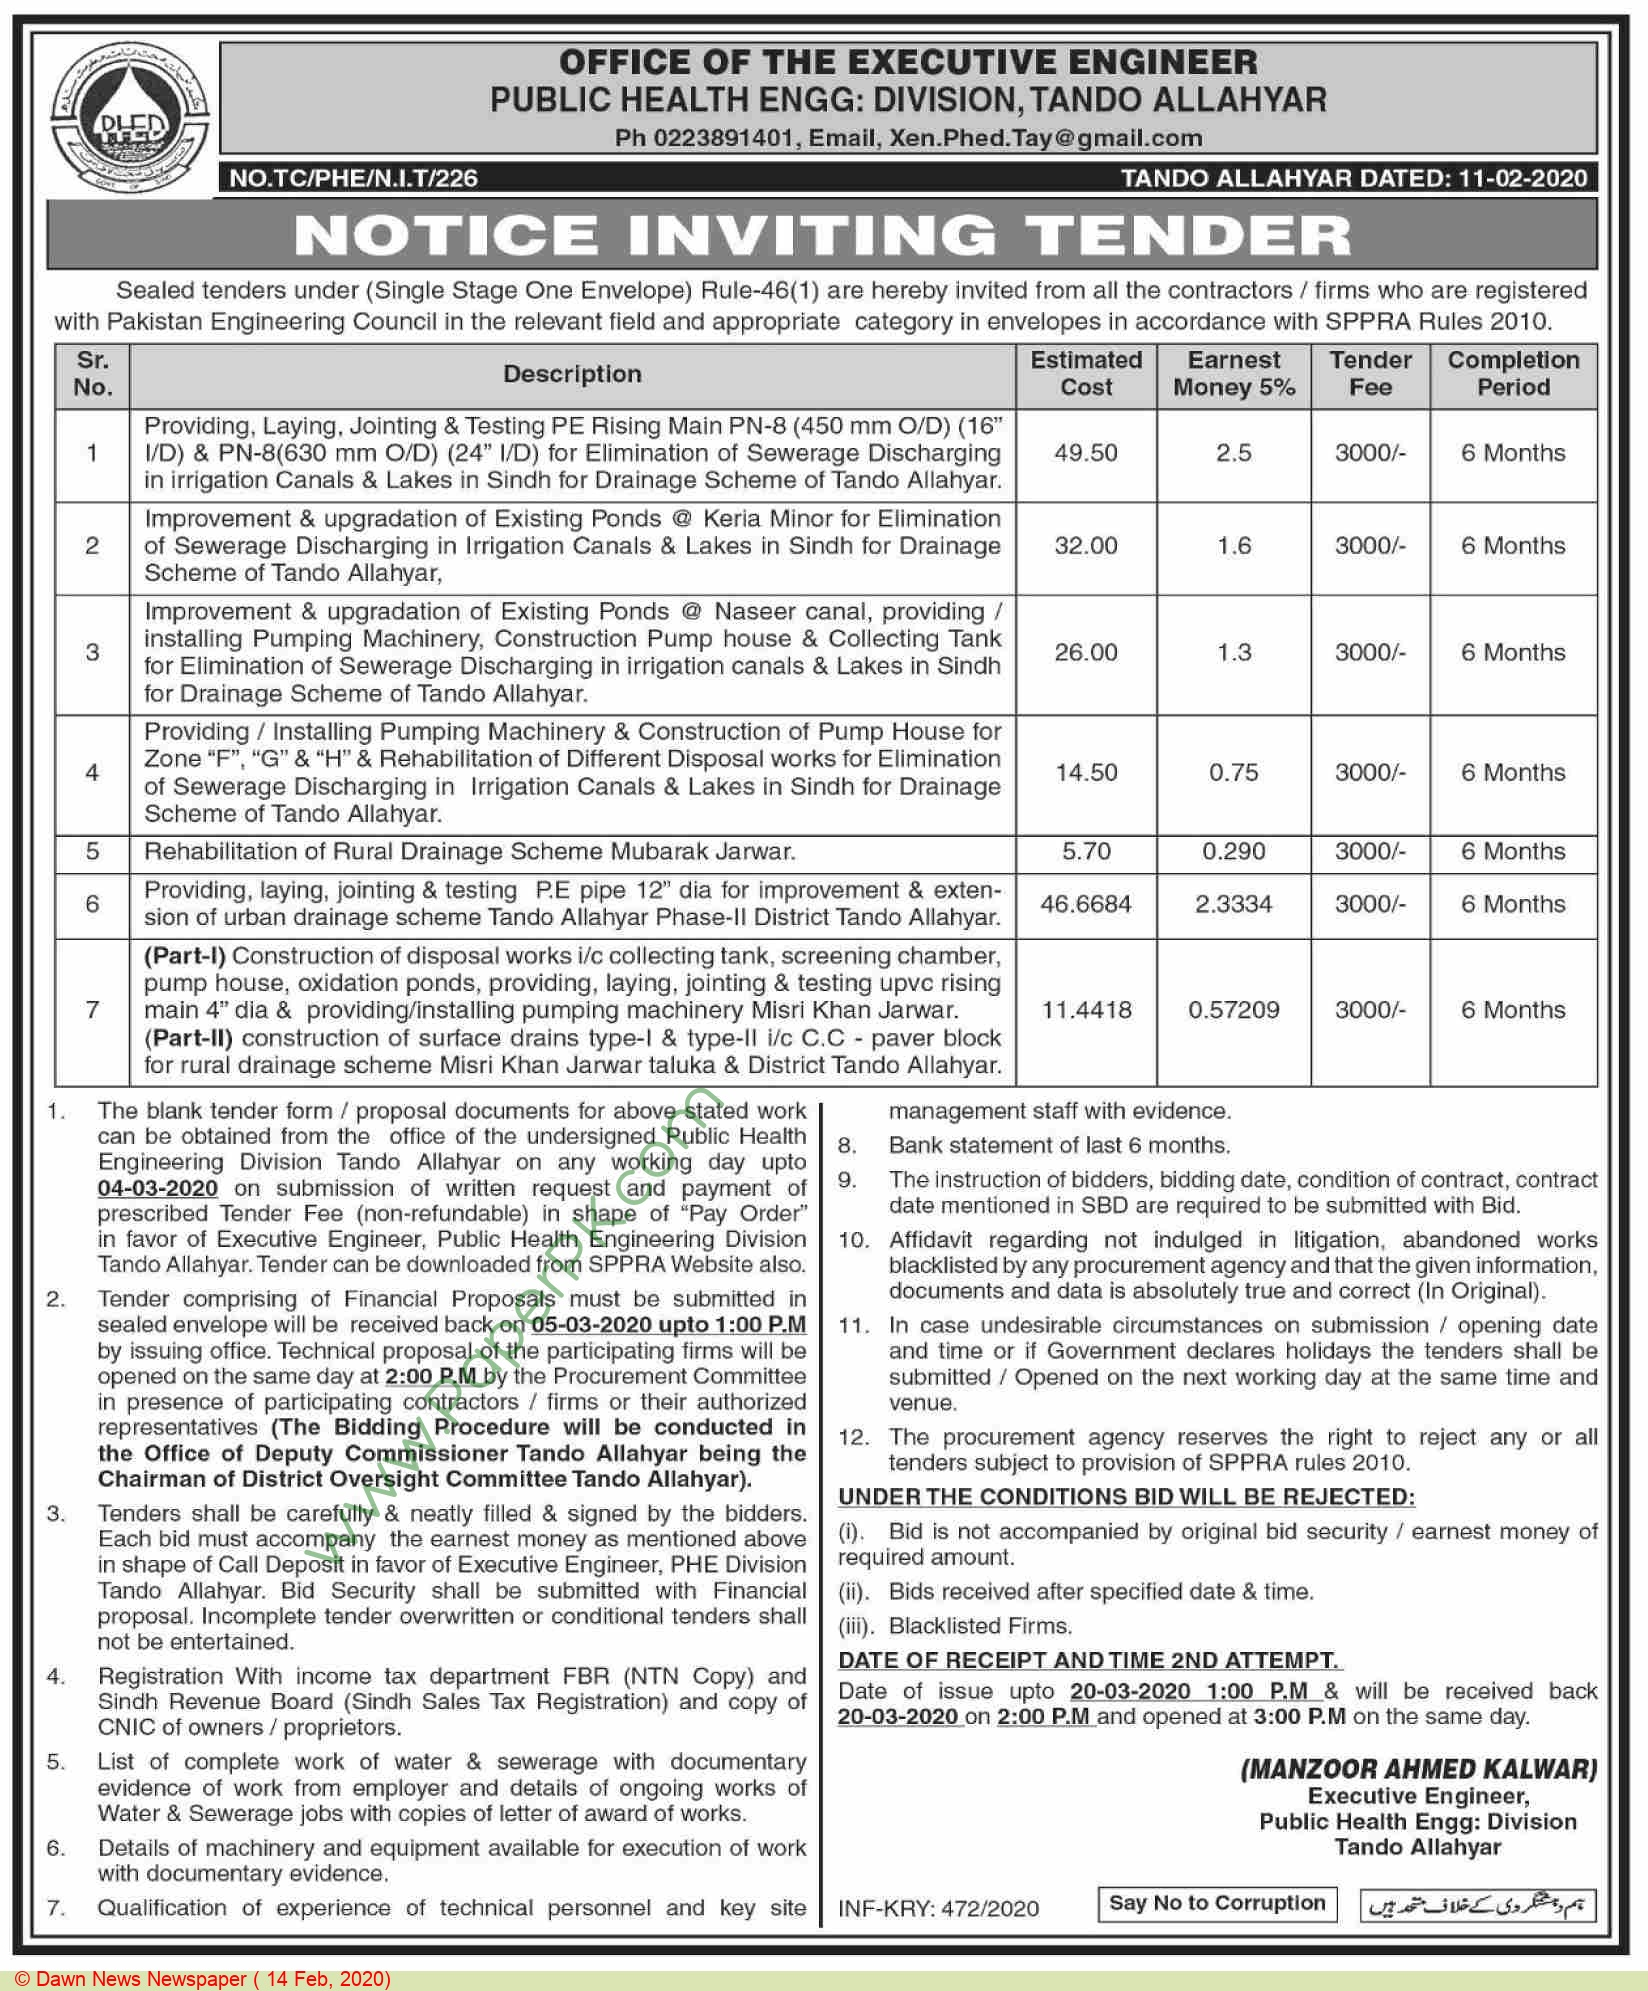 Public Health Engineering Division Tando Allahyar Tender Notice